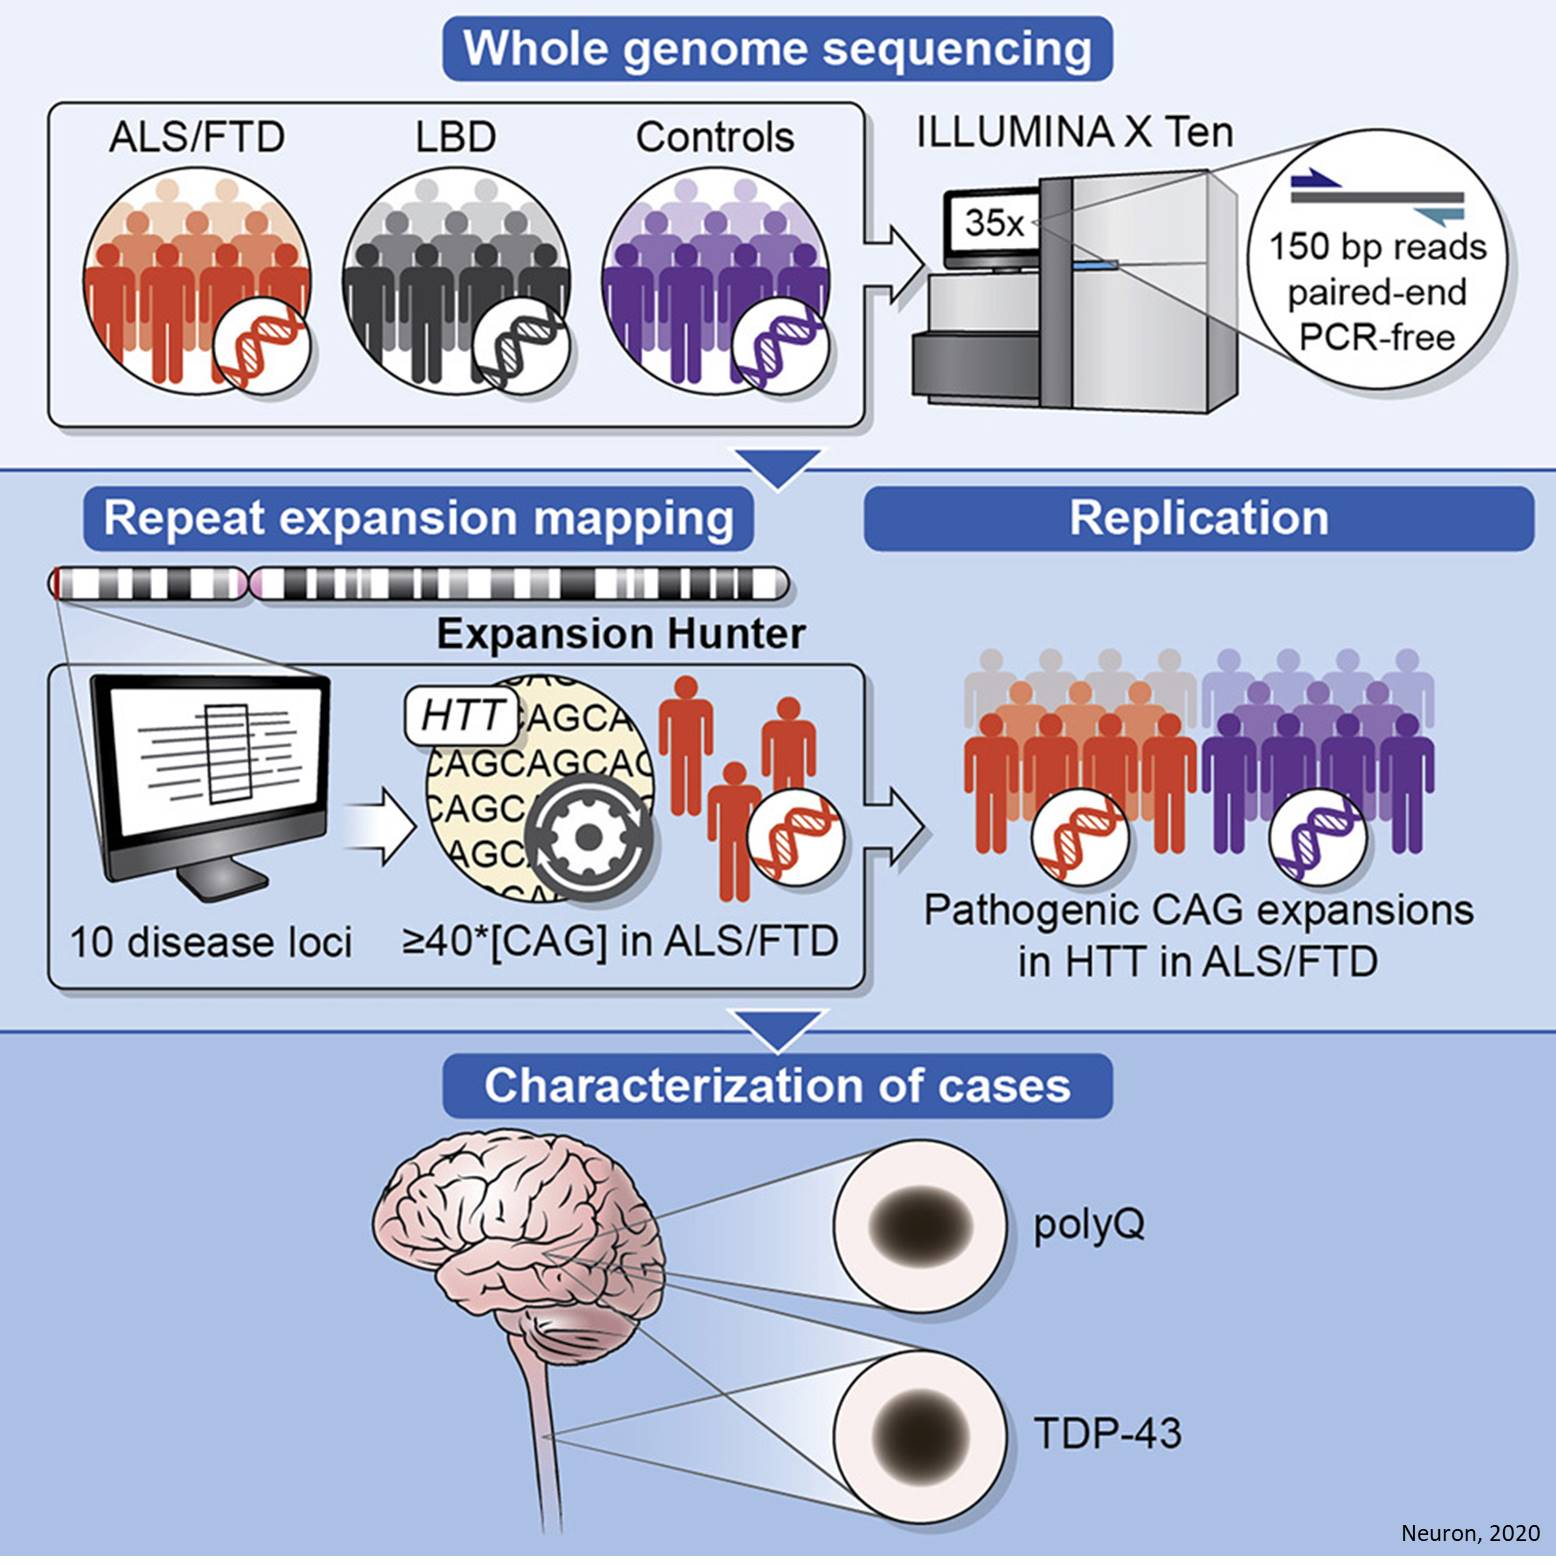 Huntingtin repeat expansions seen in some ALS and FTD patients